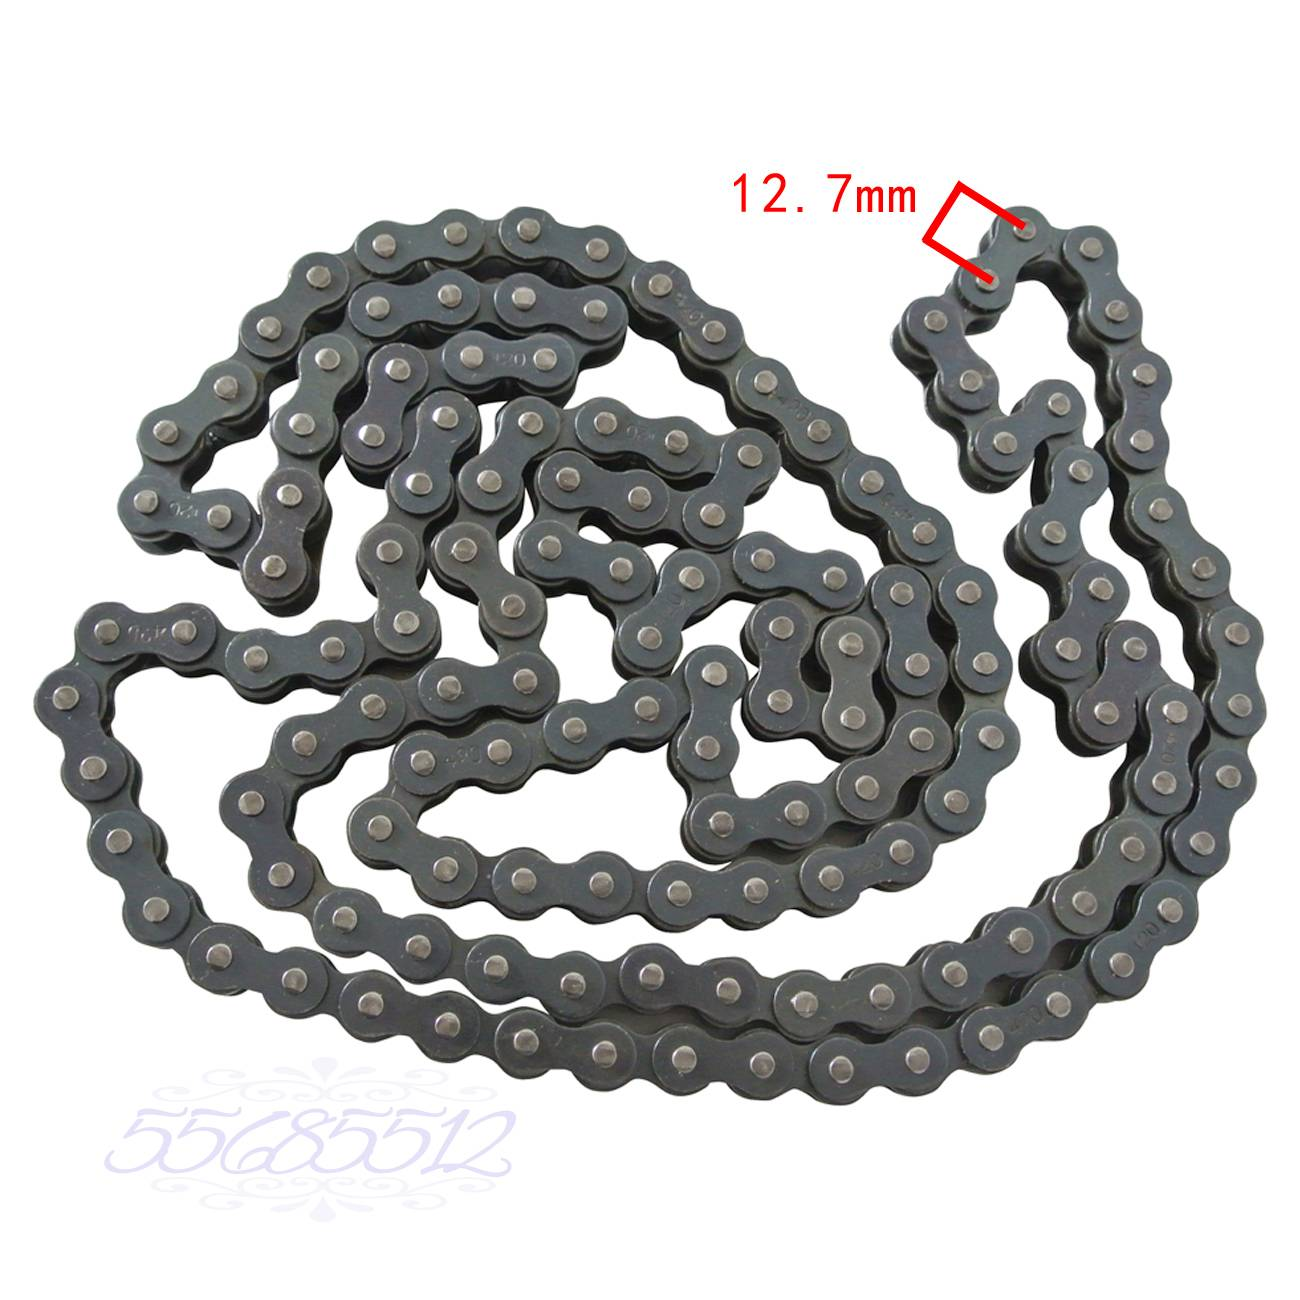 Motorcycle Chain 420-140L Fit ATV Quad Pit Dirt Bike With 1 Master Link